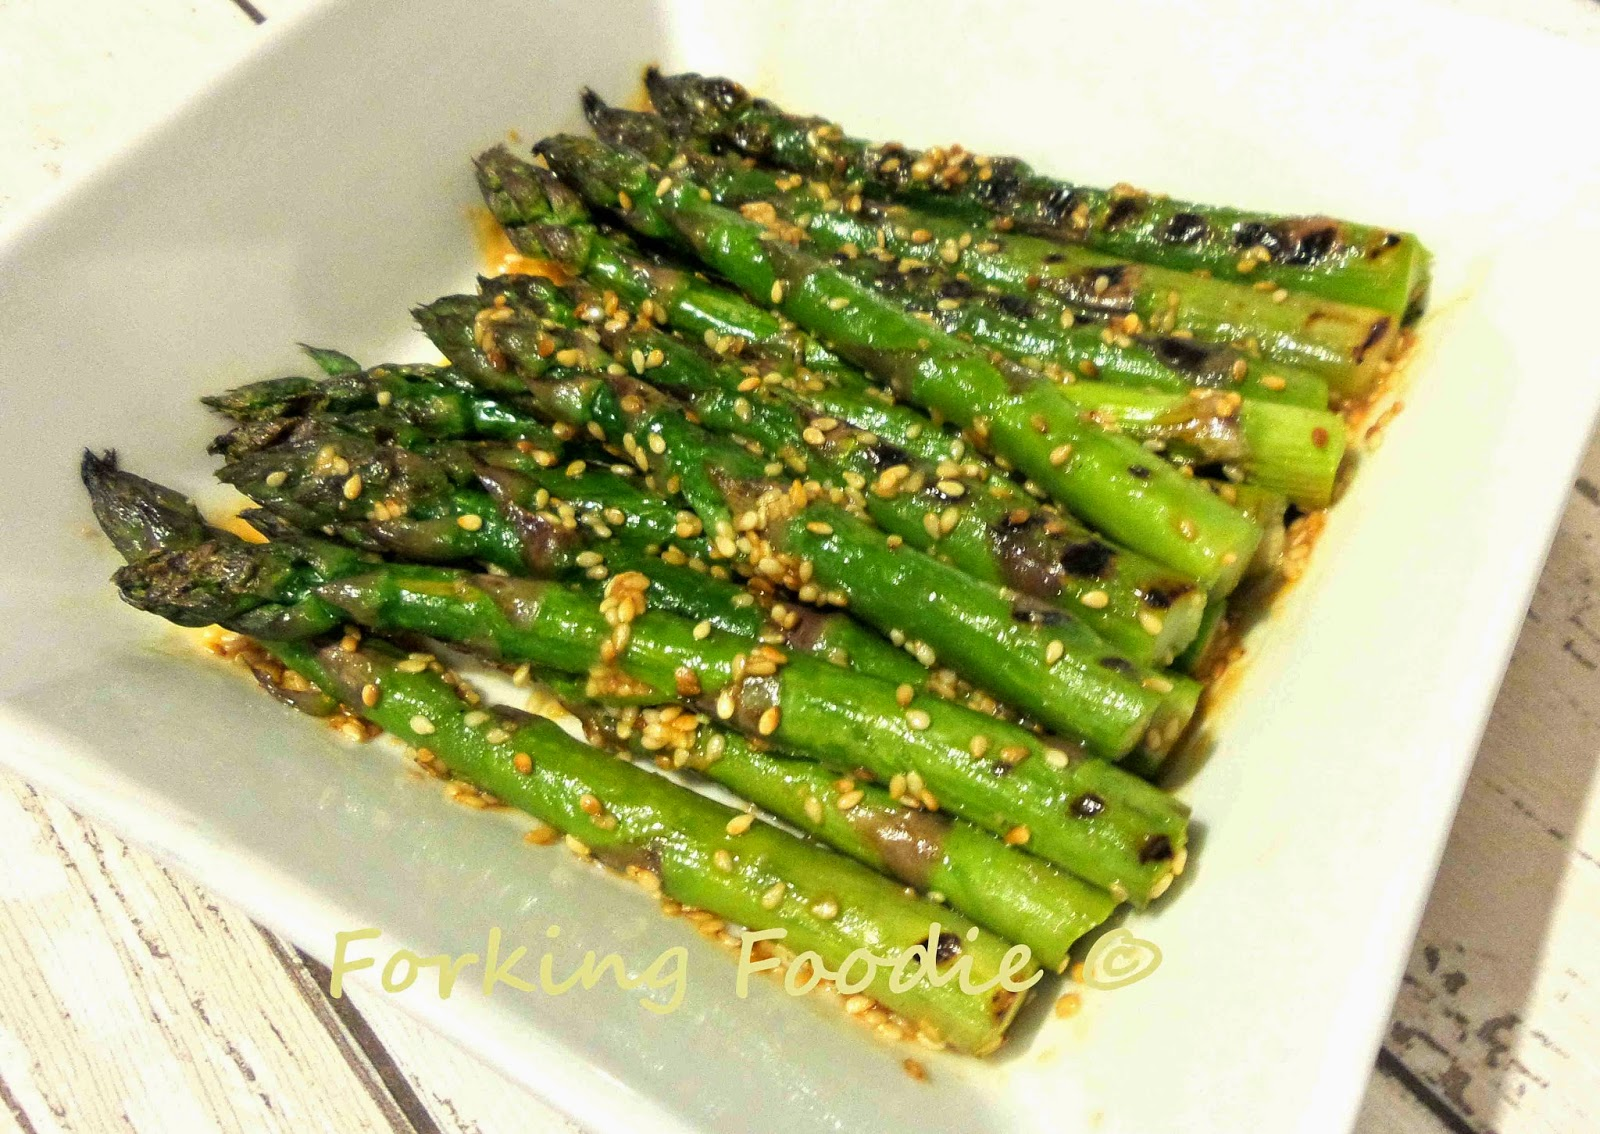 Forking Foodie: Sesame-Miso Asparagus or Green Beans (...or Broccoli?)